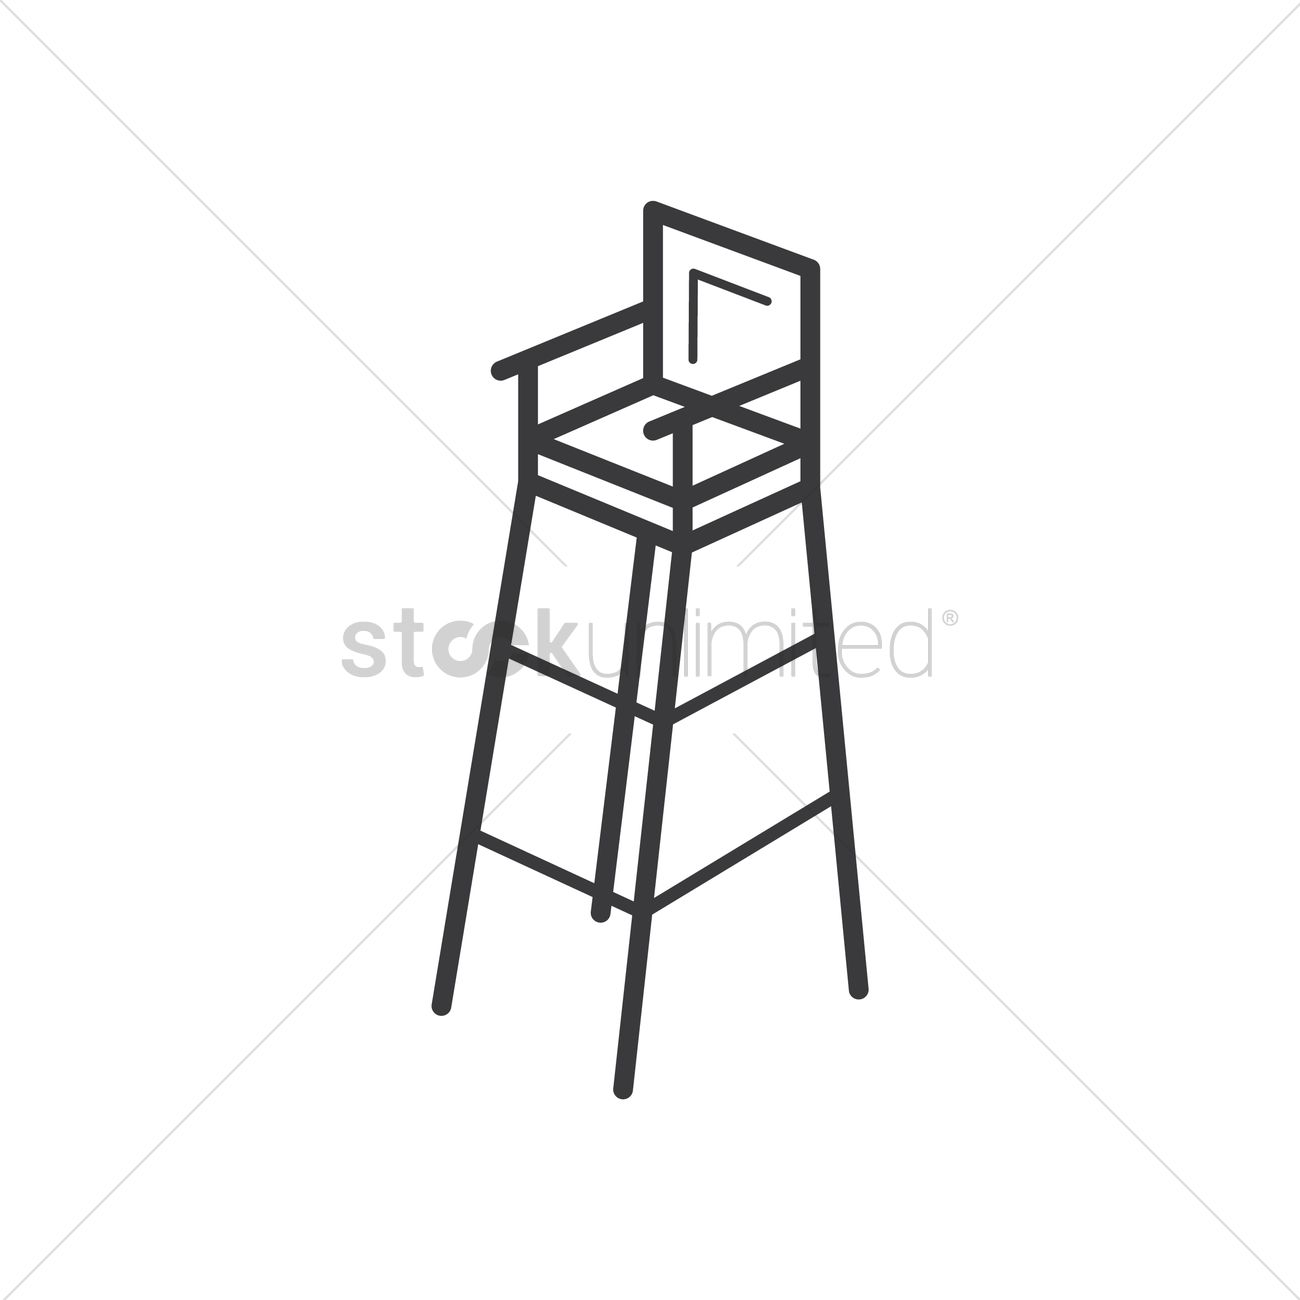 badminton umpire chair vector graphic  sc 1 st  StockUnlimited & Badminton umpire chair Vector Image - 2029924 | StockUnlimited